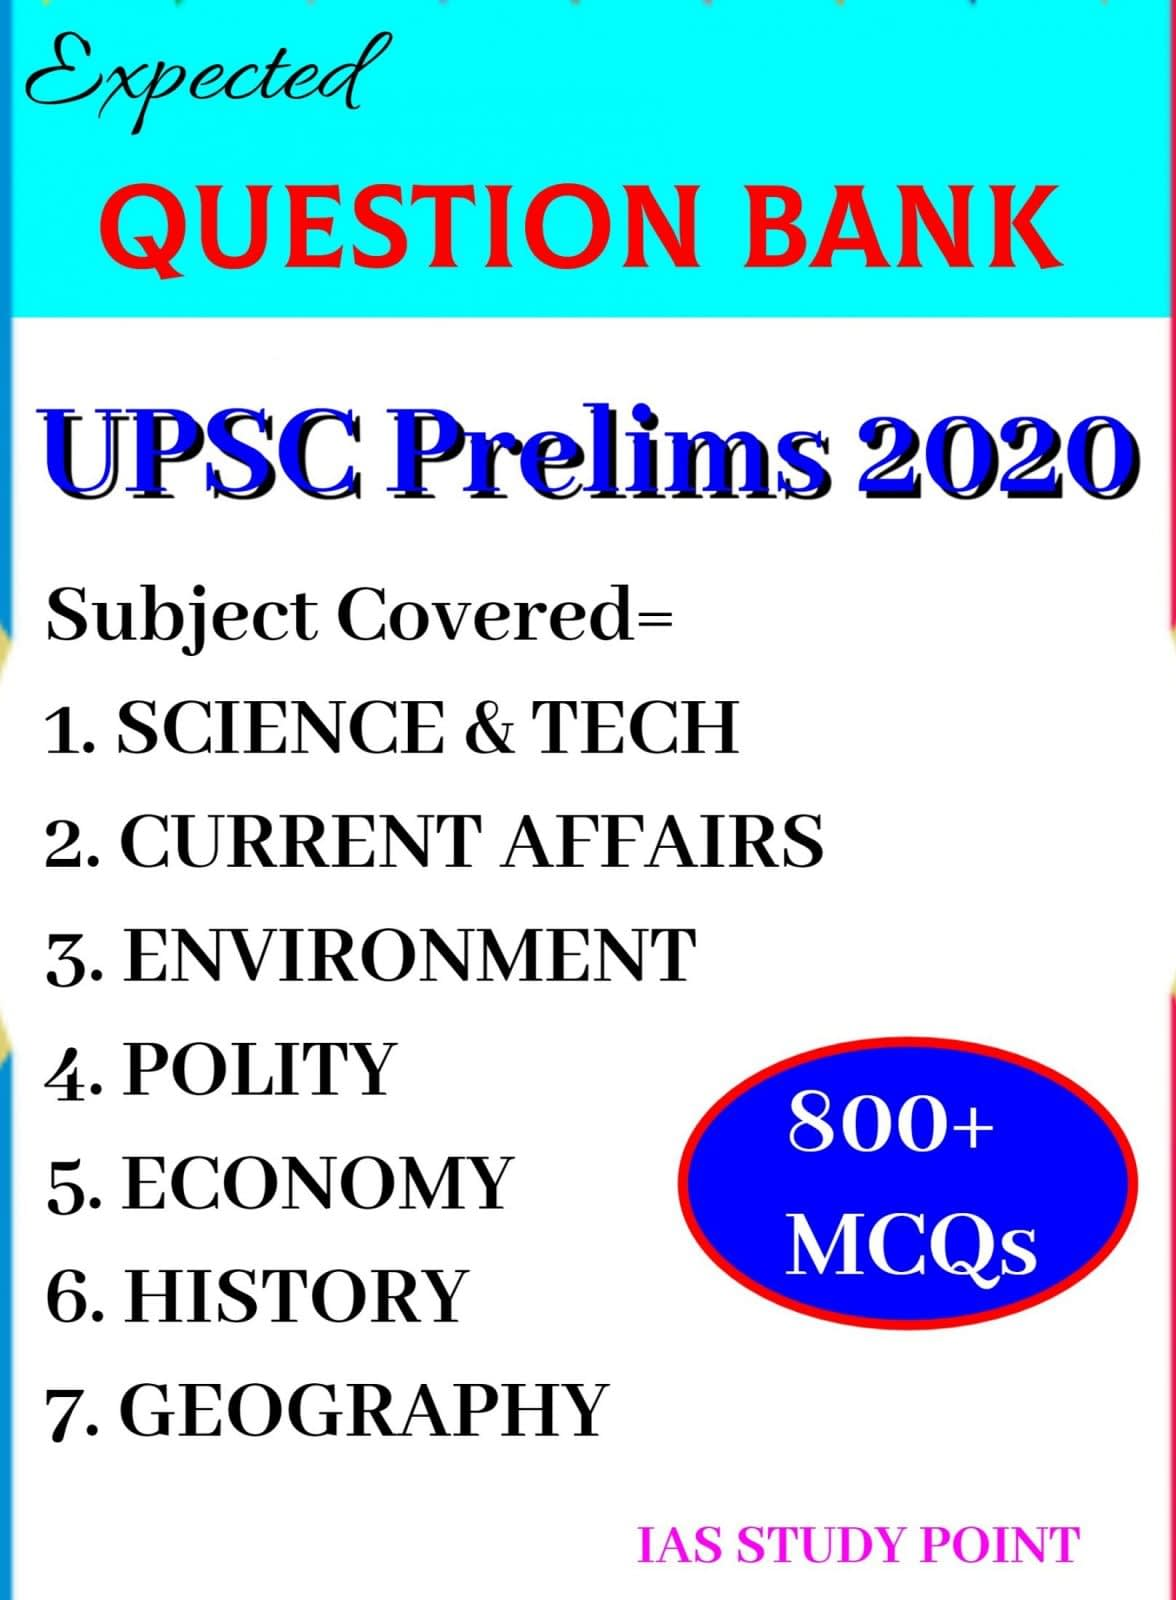 UPSC Prelims 2020 Expected Question Bank: 800+ MCQs